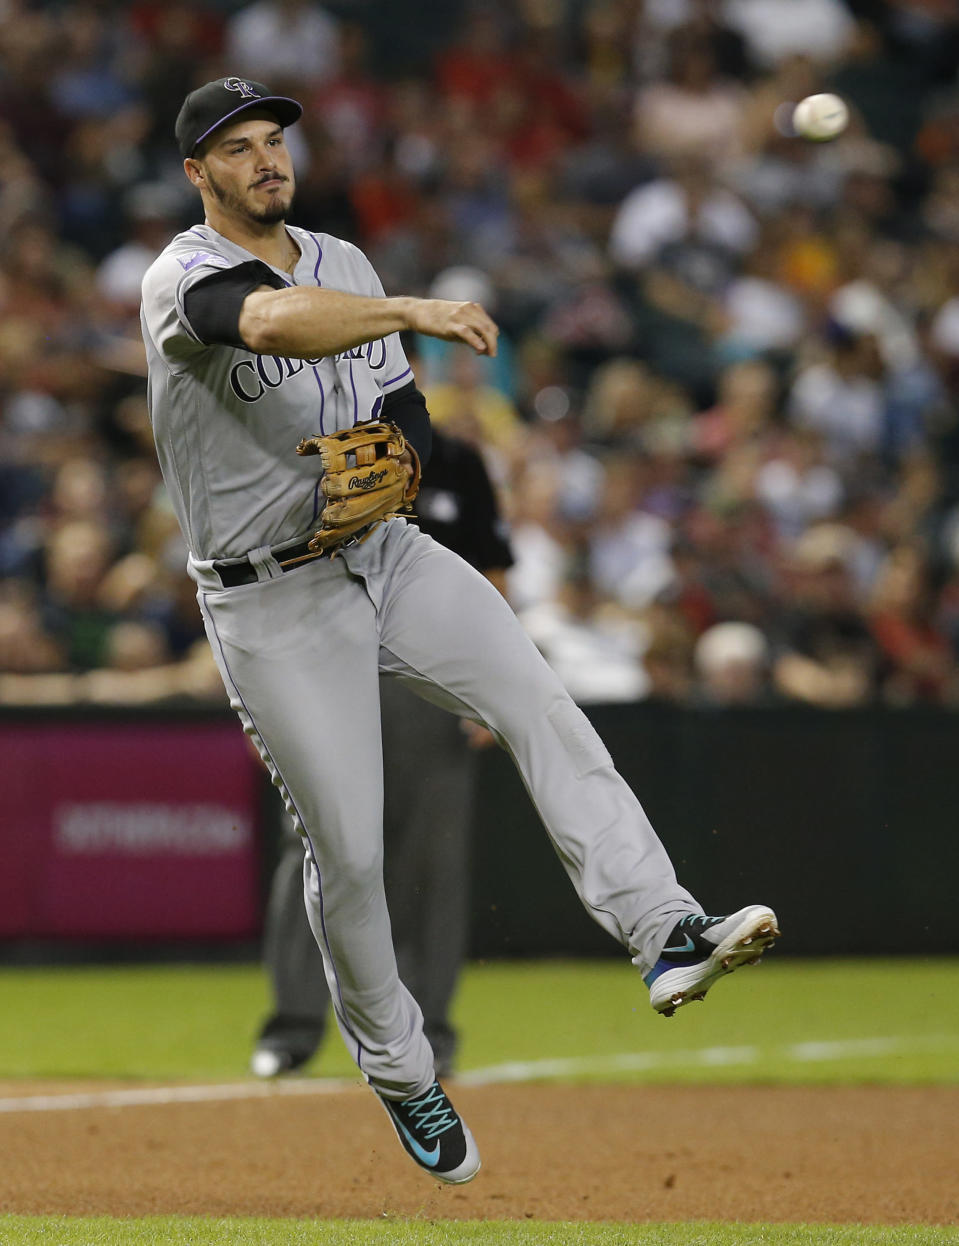 Colorado Rockies third baseman Nolan Arenado makes the off-balance throw for the out on a ball hit by Arizona Diamondbacks' Paul Goldschmidt in the fourth inning during a baseball game, Friday, Sept. 21, 2018, in Phoenix. (AP Photo/Rick Scuteri)